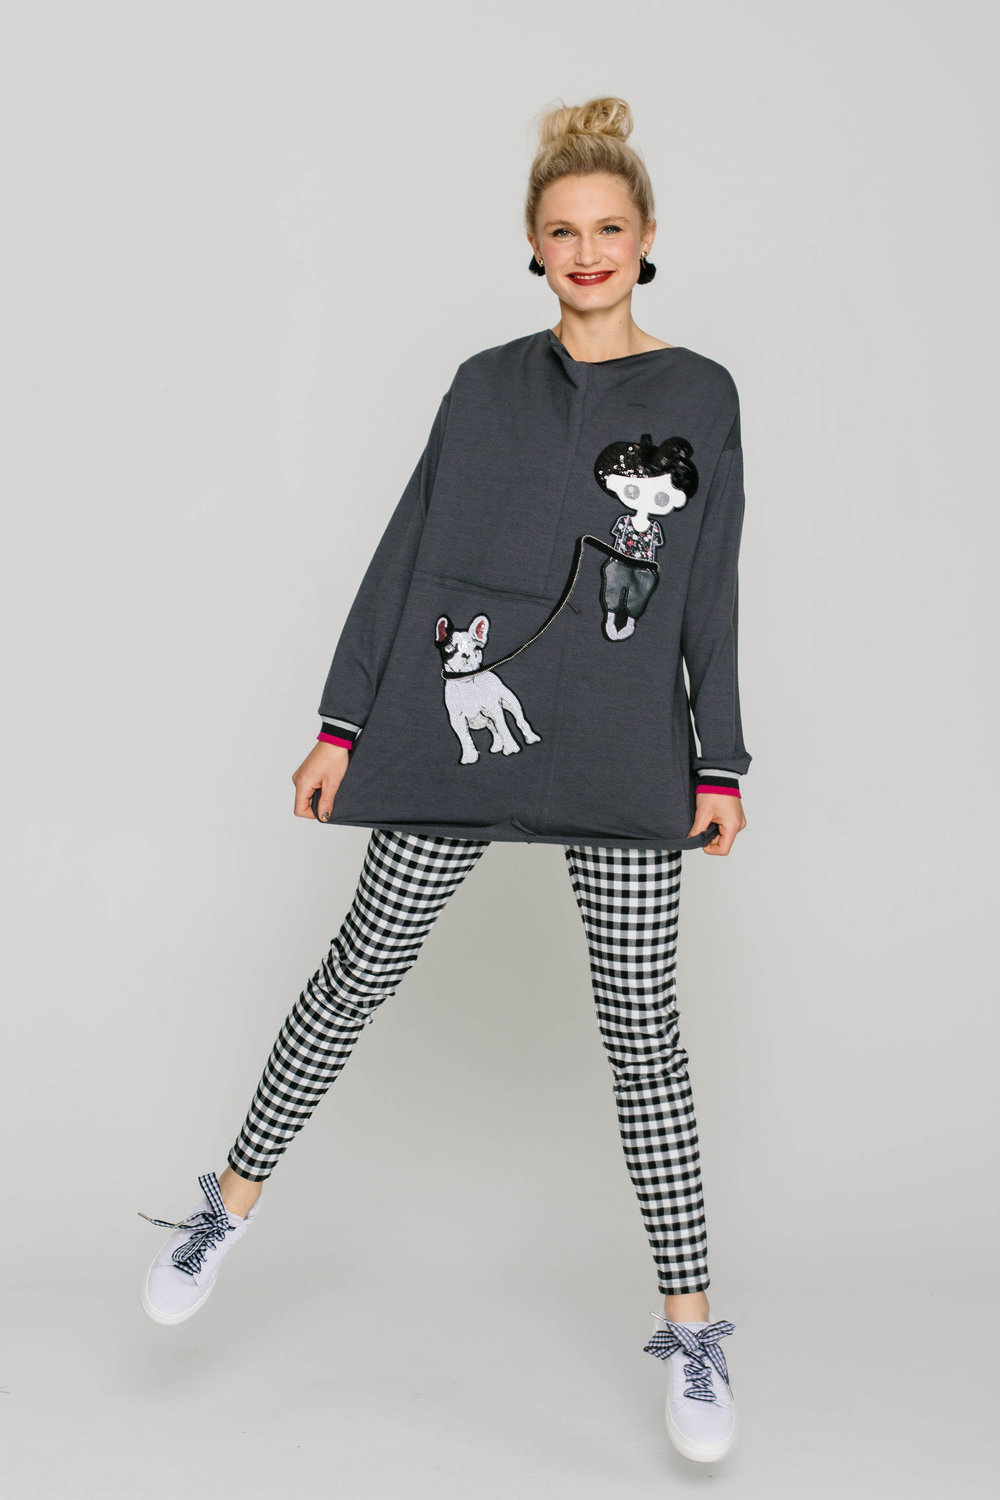 6169W Poppy Sweat Black 5561W New Joseph Pant Rupert Bear Plain